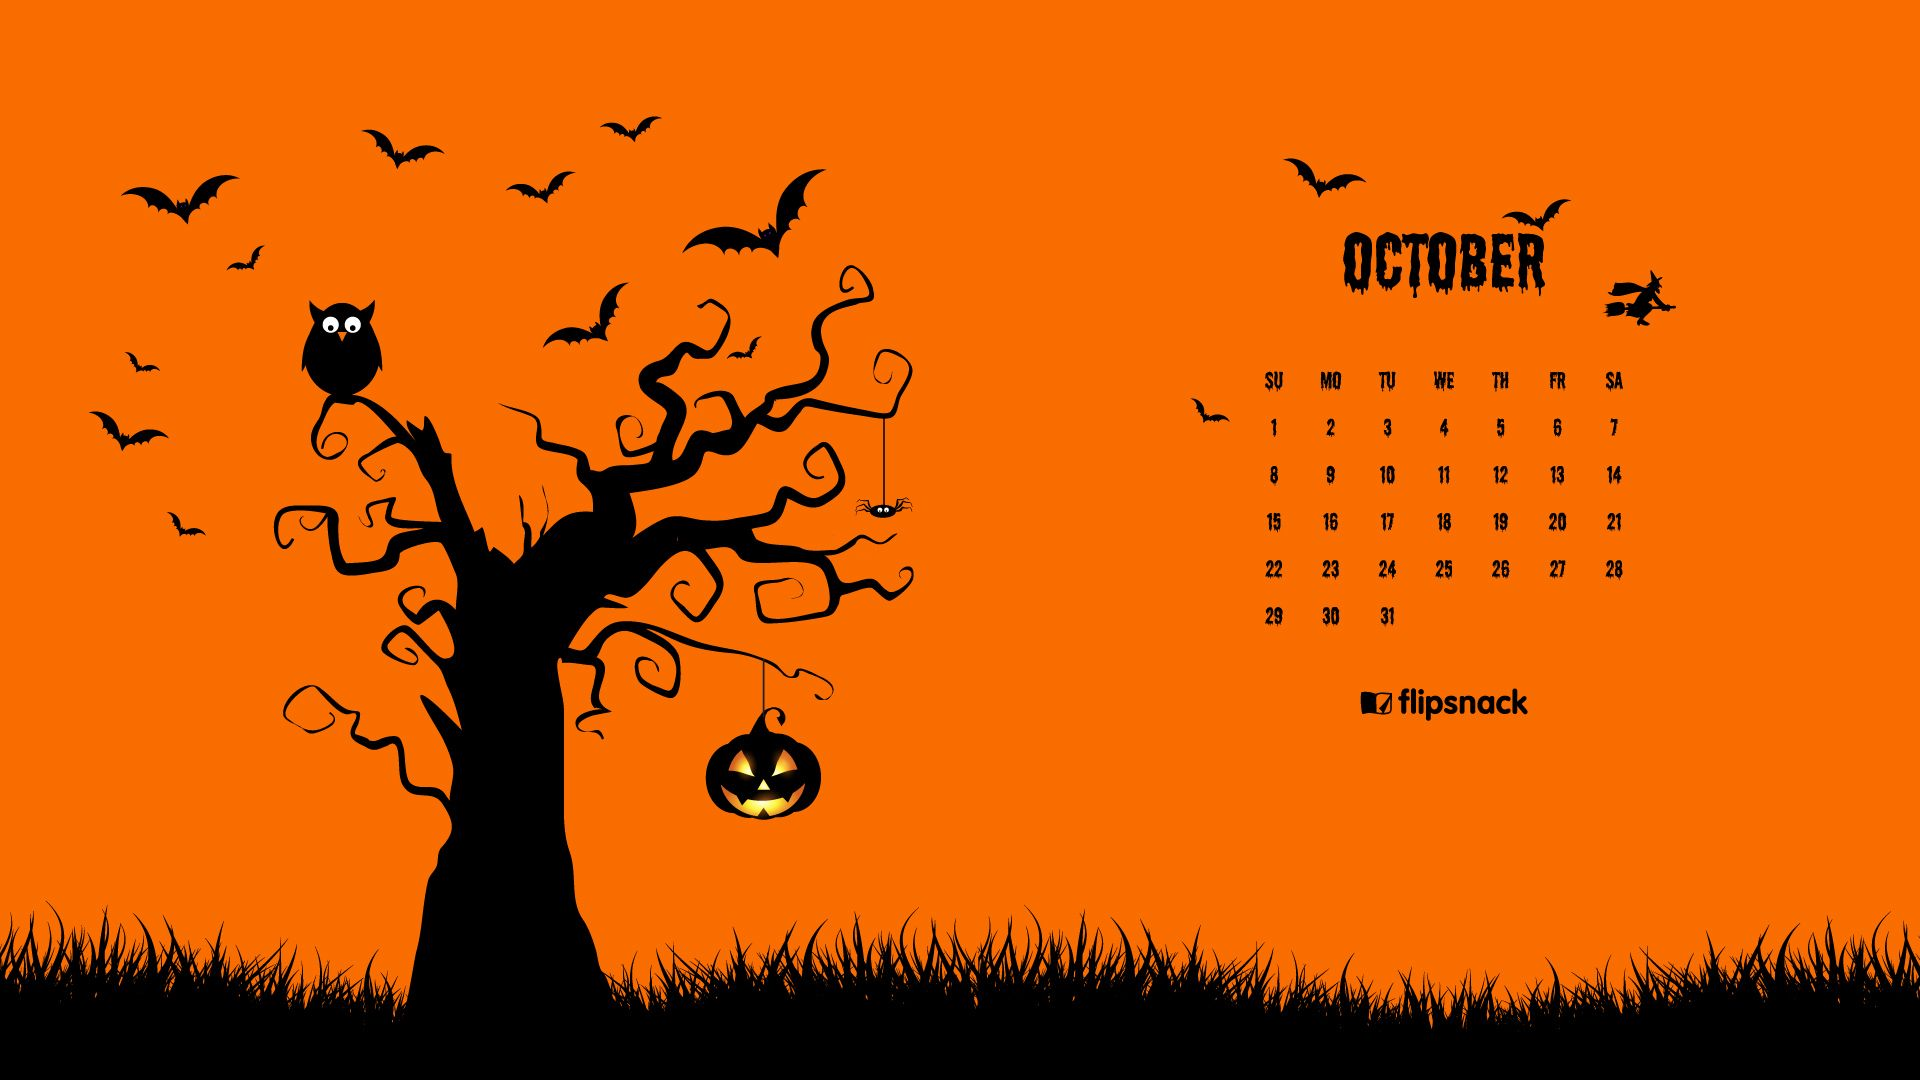 october wallpaper download